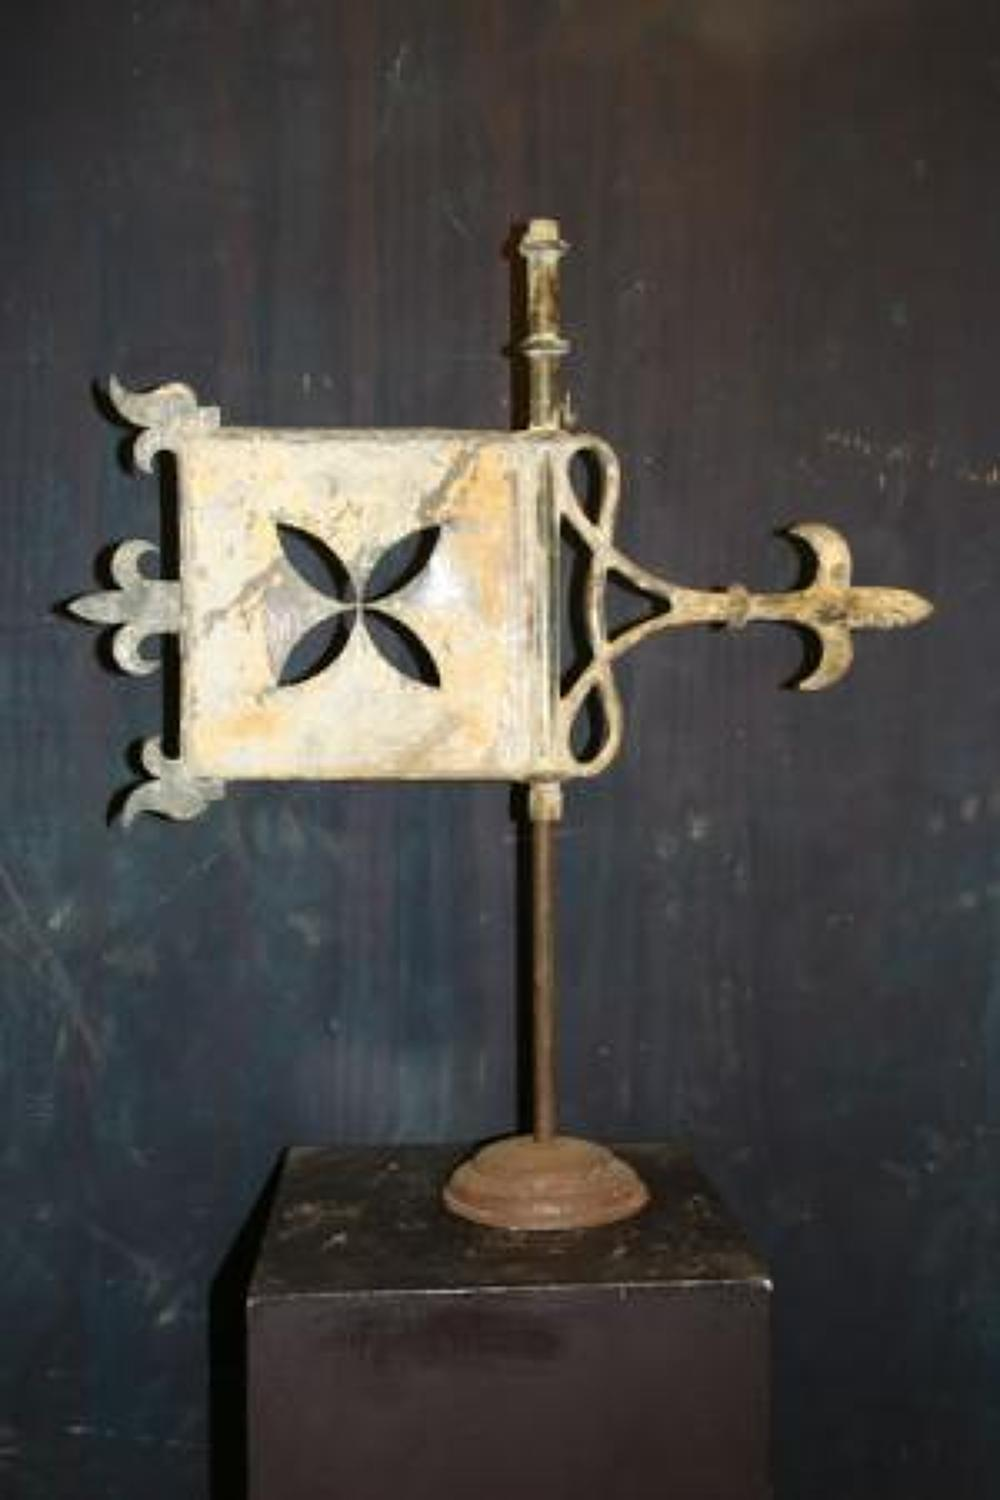 Weather vane iron 19th century